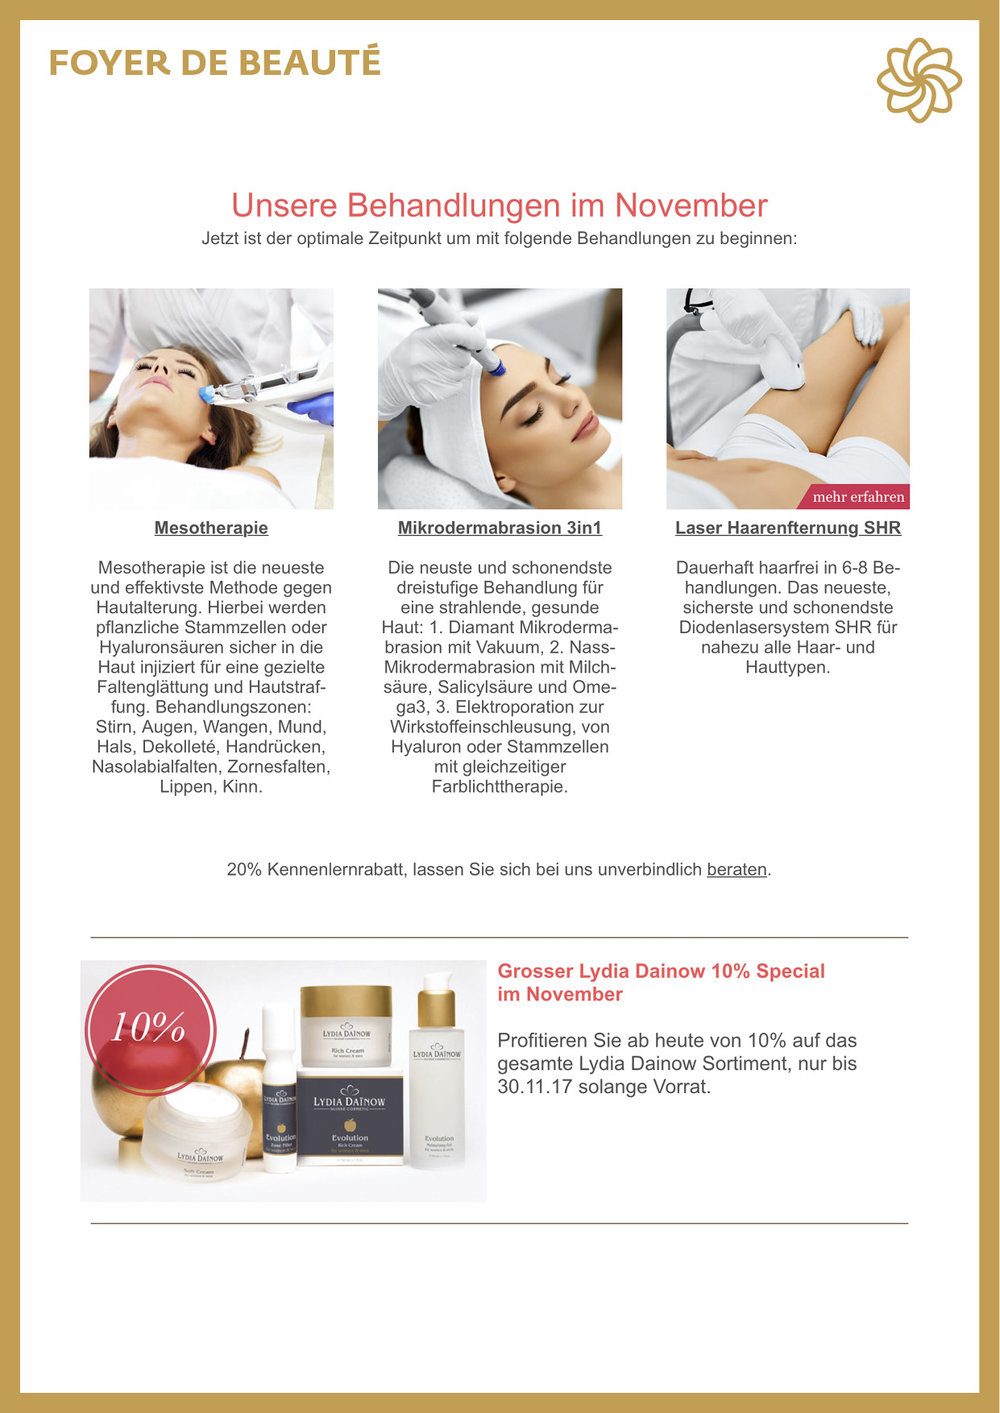 Lydia Dainow, Med Beauty, Lydia Dainow, Laser Haarentfernung, Hairremoval, Mikrodermabrasion, Mesotherapie